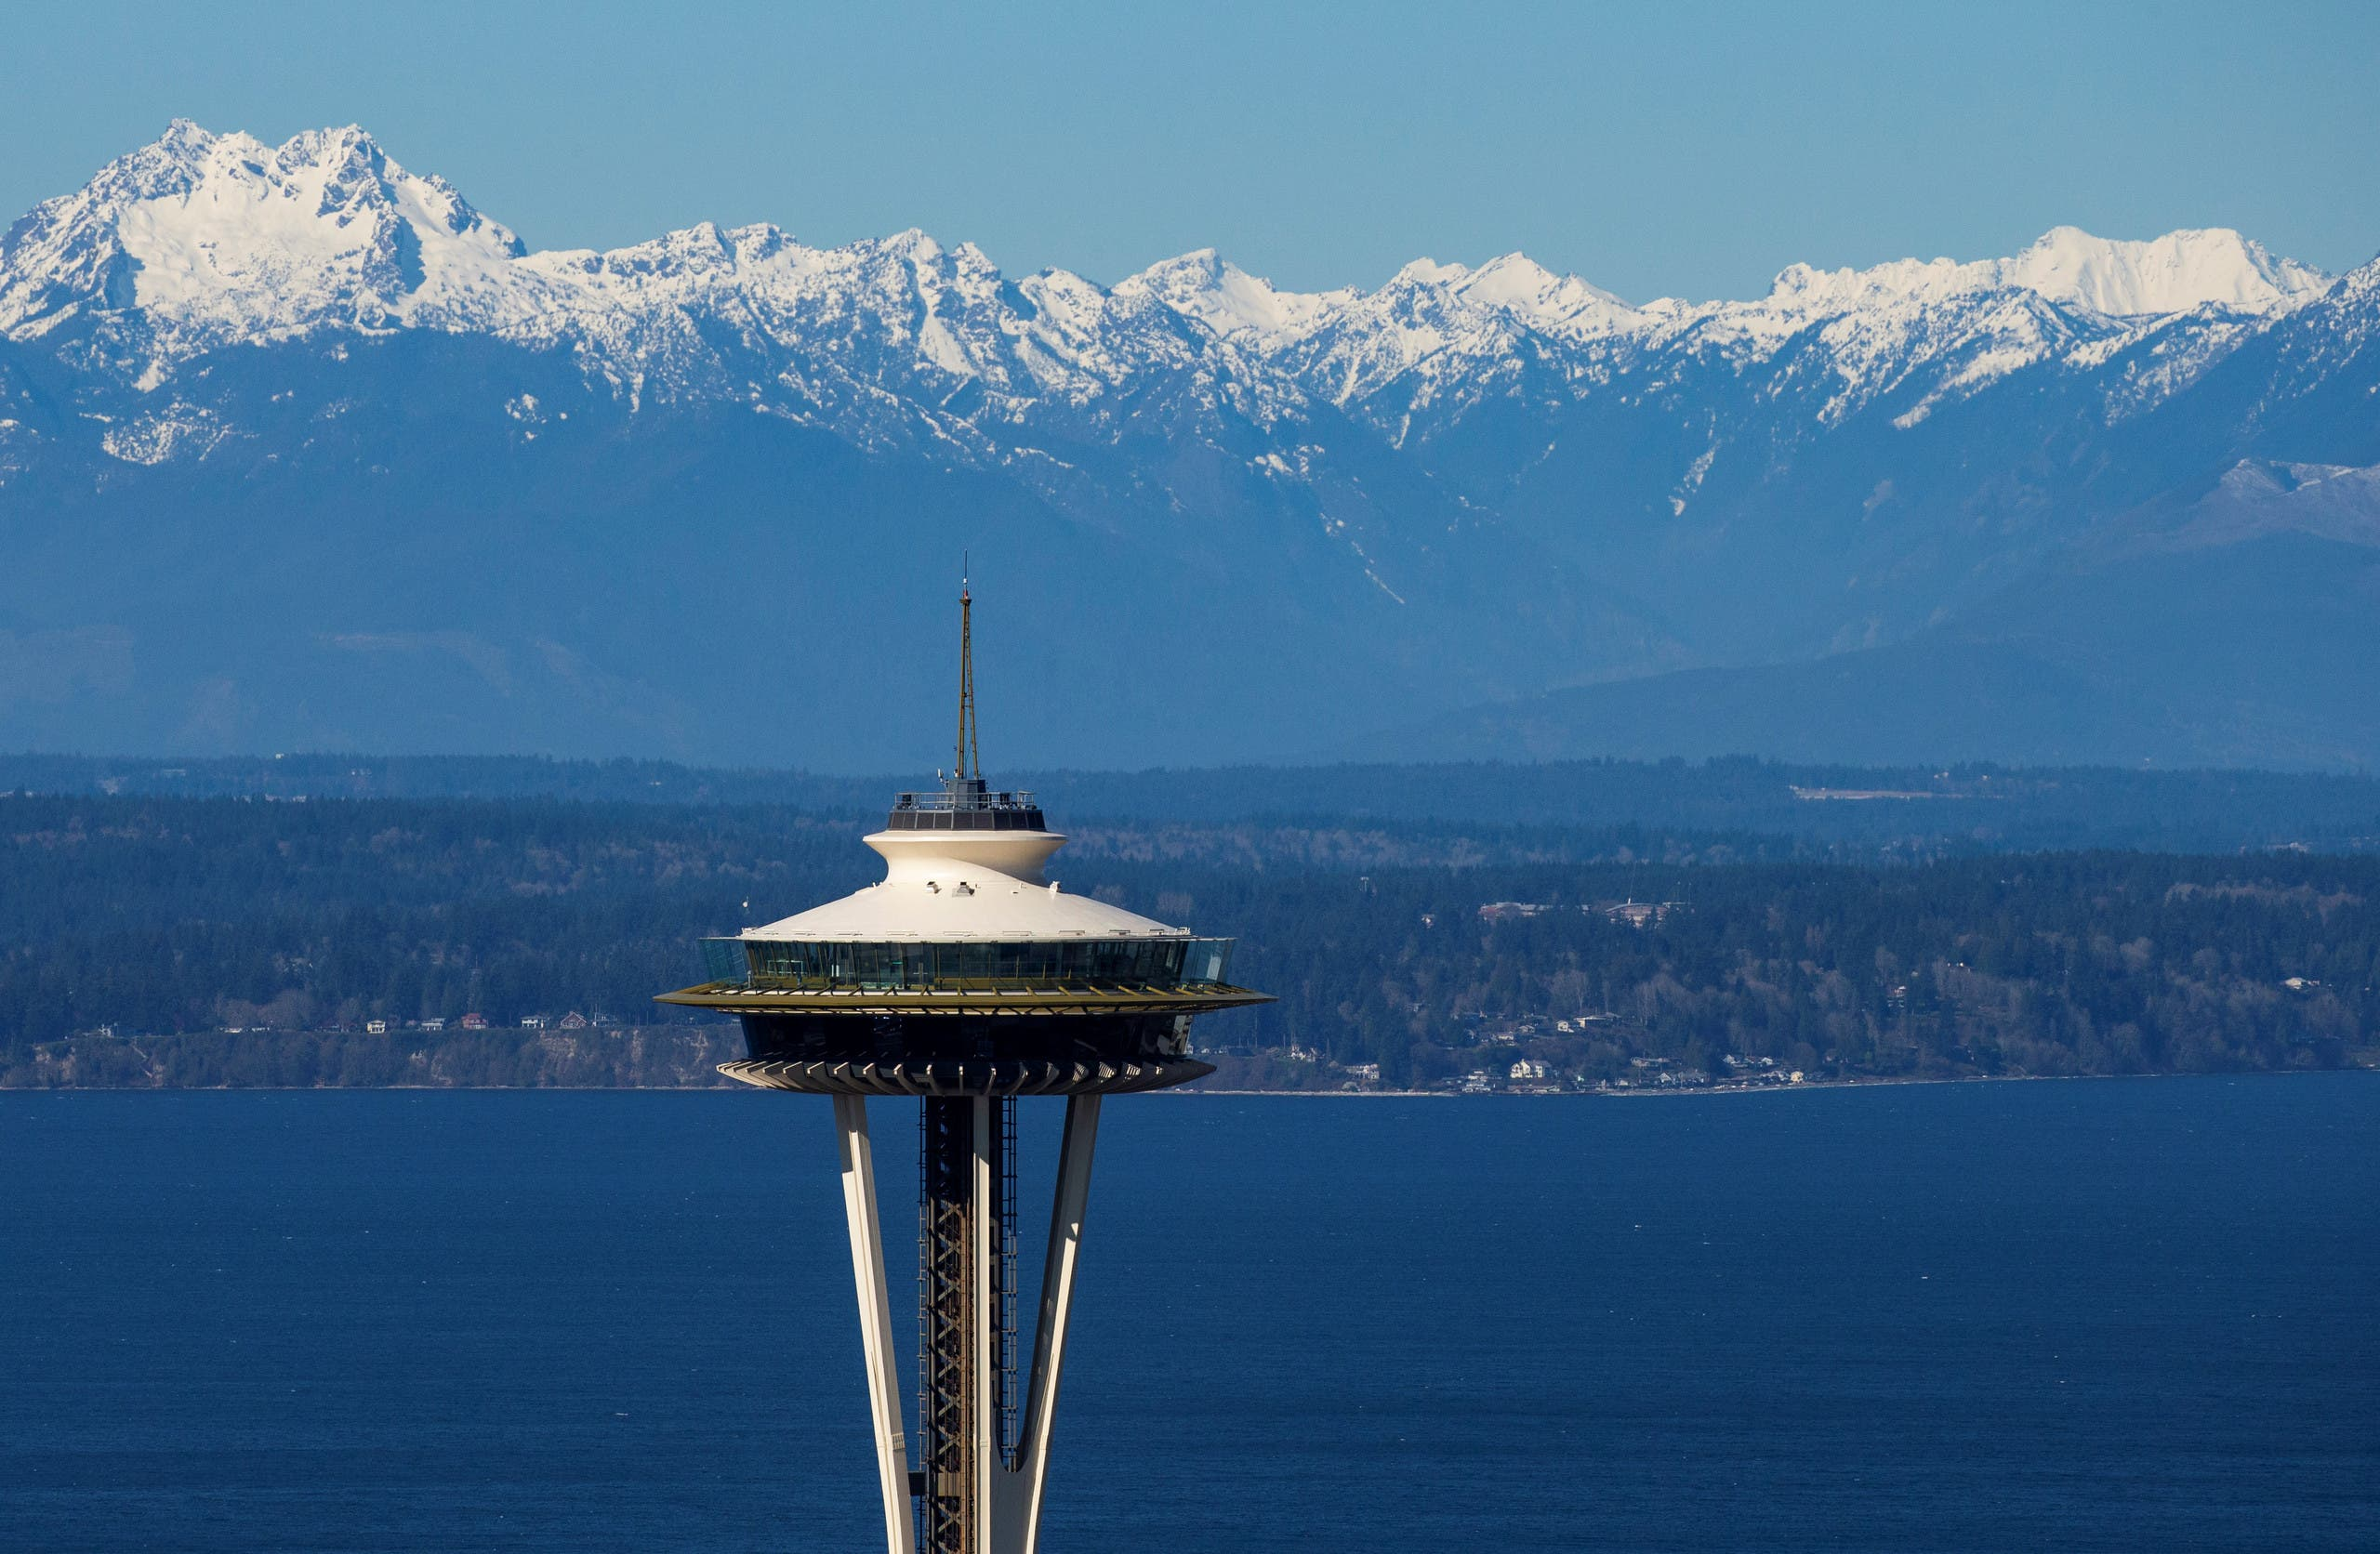 The Space Needle, closed due to coronavirus concerns, is shown during the outbreak of coronavirus disease (COVID-19), shown in this aerial photo over Seattle. (File photo: Reuters)